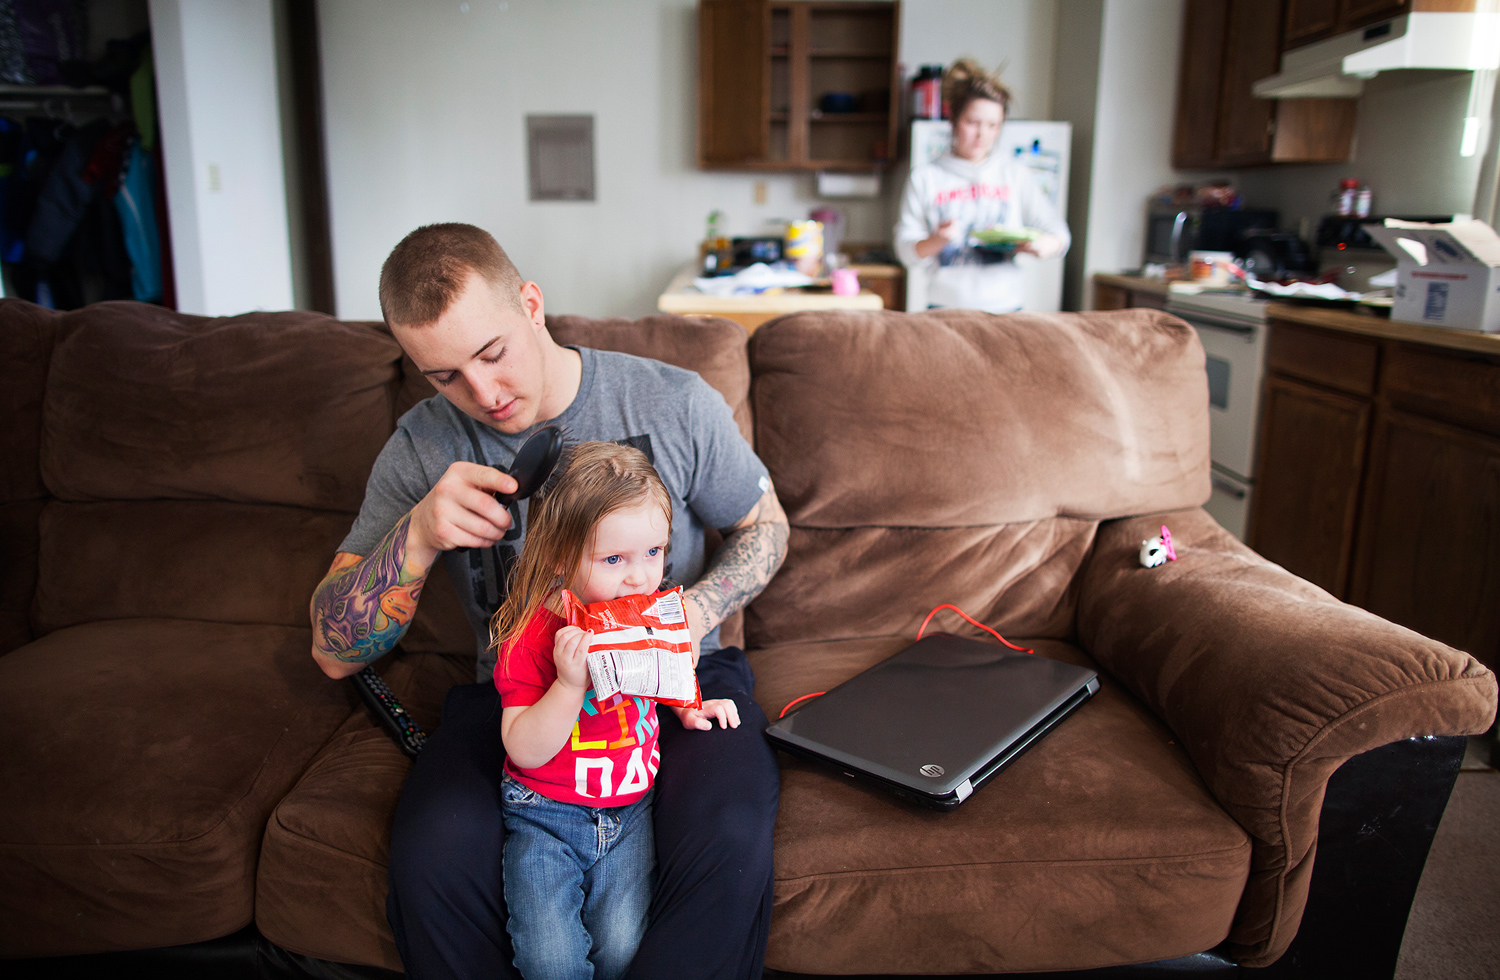 Because of his deployment and his period of separation from Maggie, Zane had only met his daughter Memphis once before she moved into his home in Alaska. He has embraced his new responsibilities as a father.